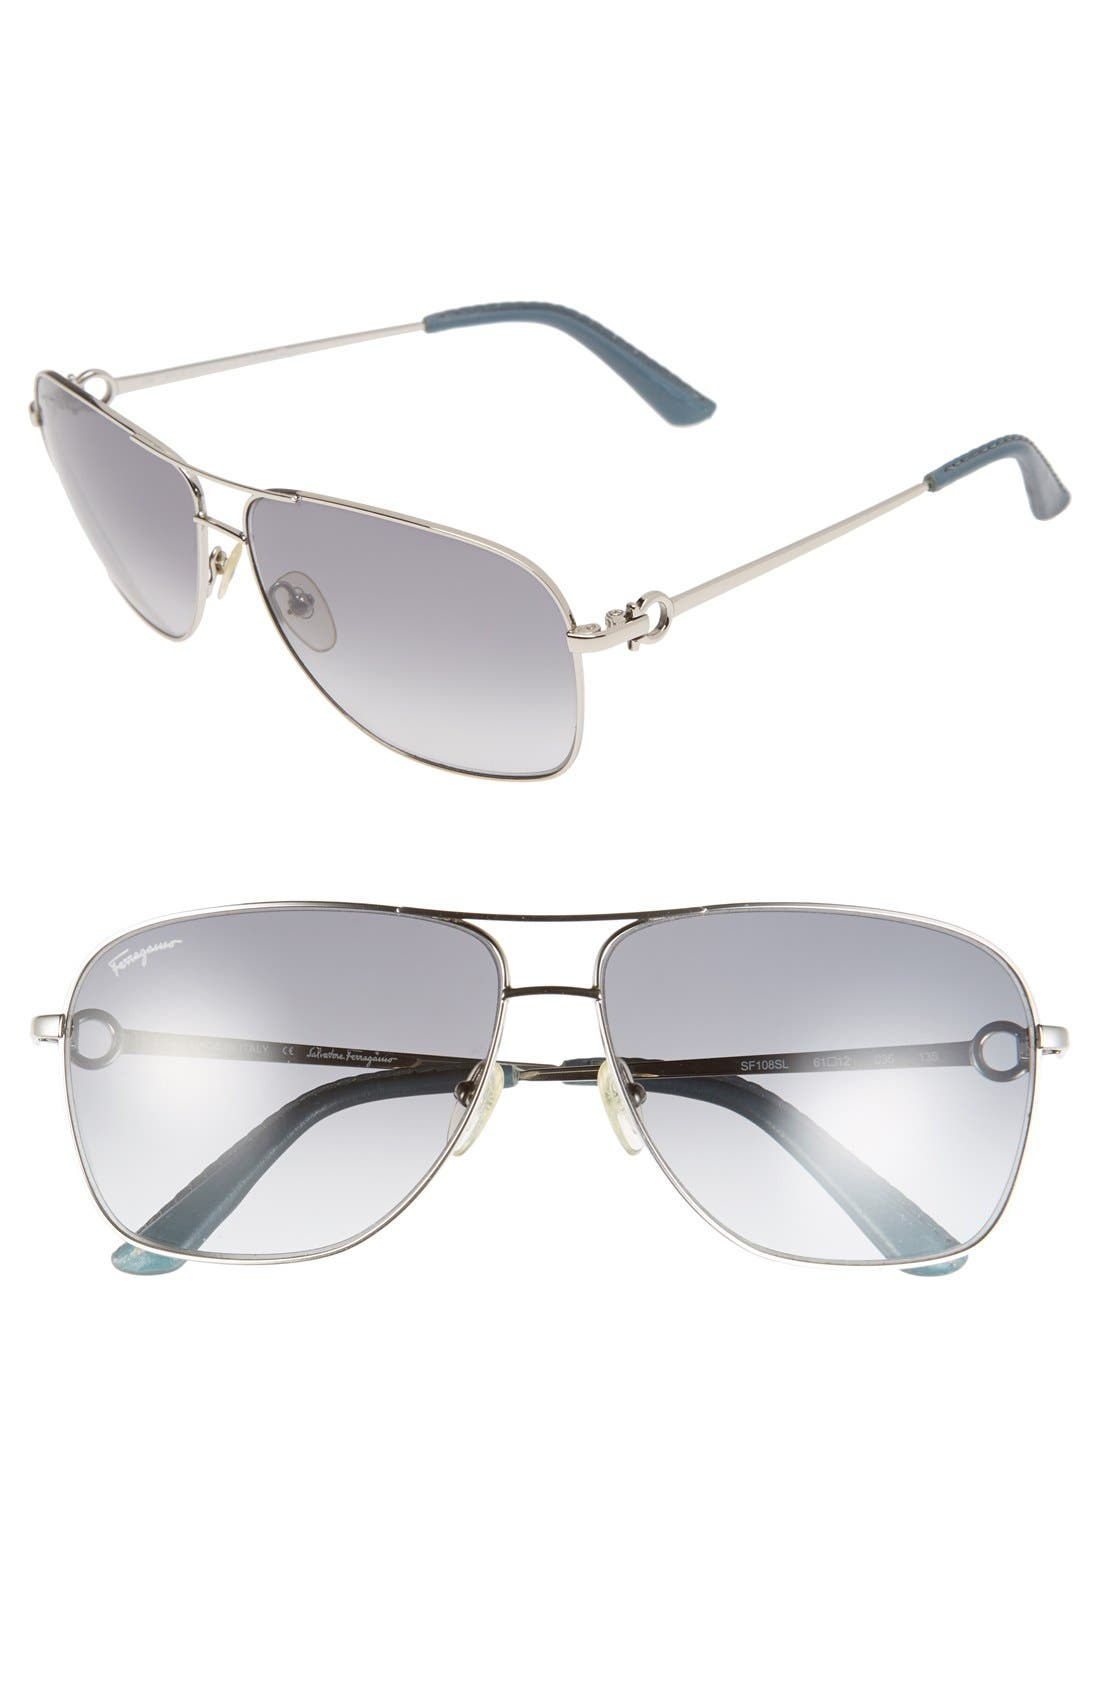 Alternate Image 1 Selected - Salvatore Ferragamo 61mm Metal Navigator Sunglasses